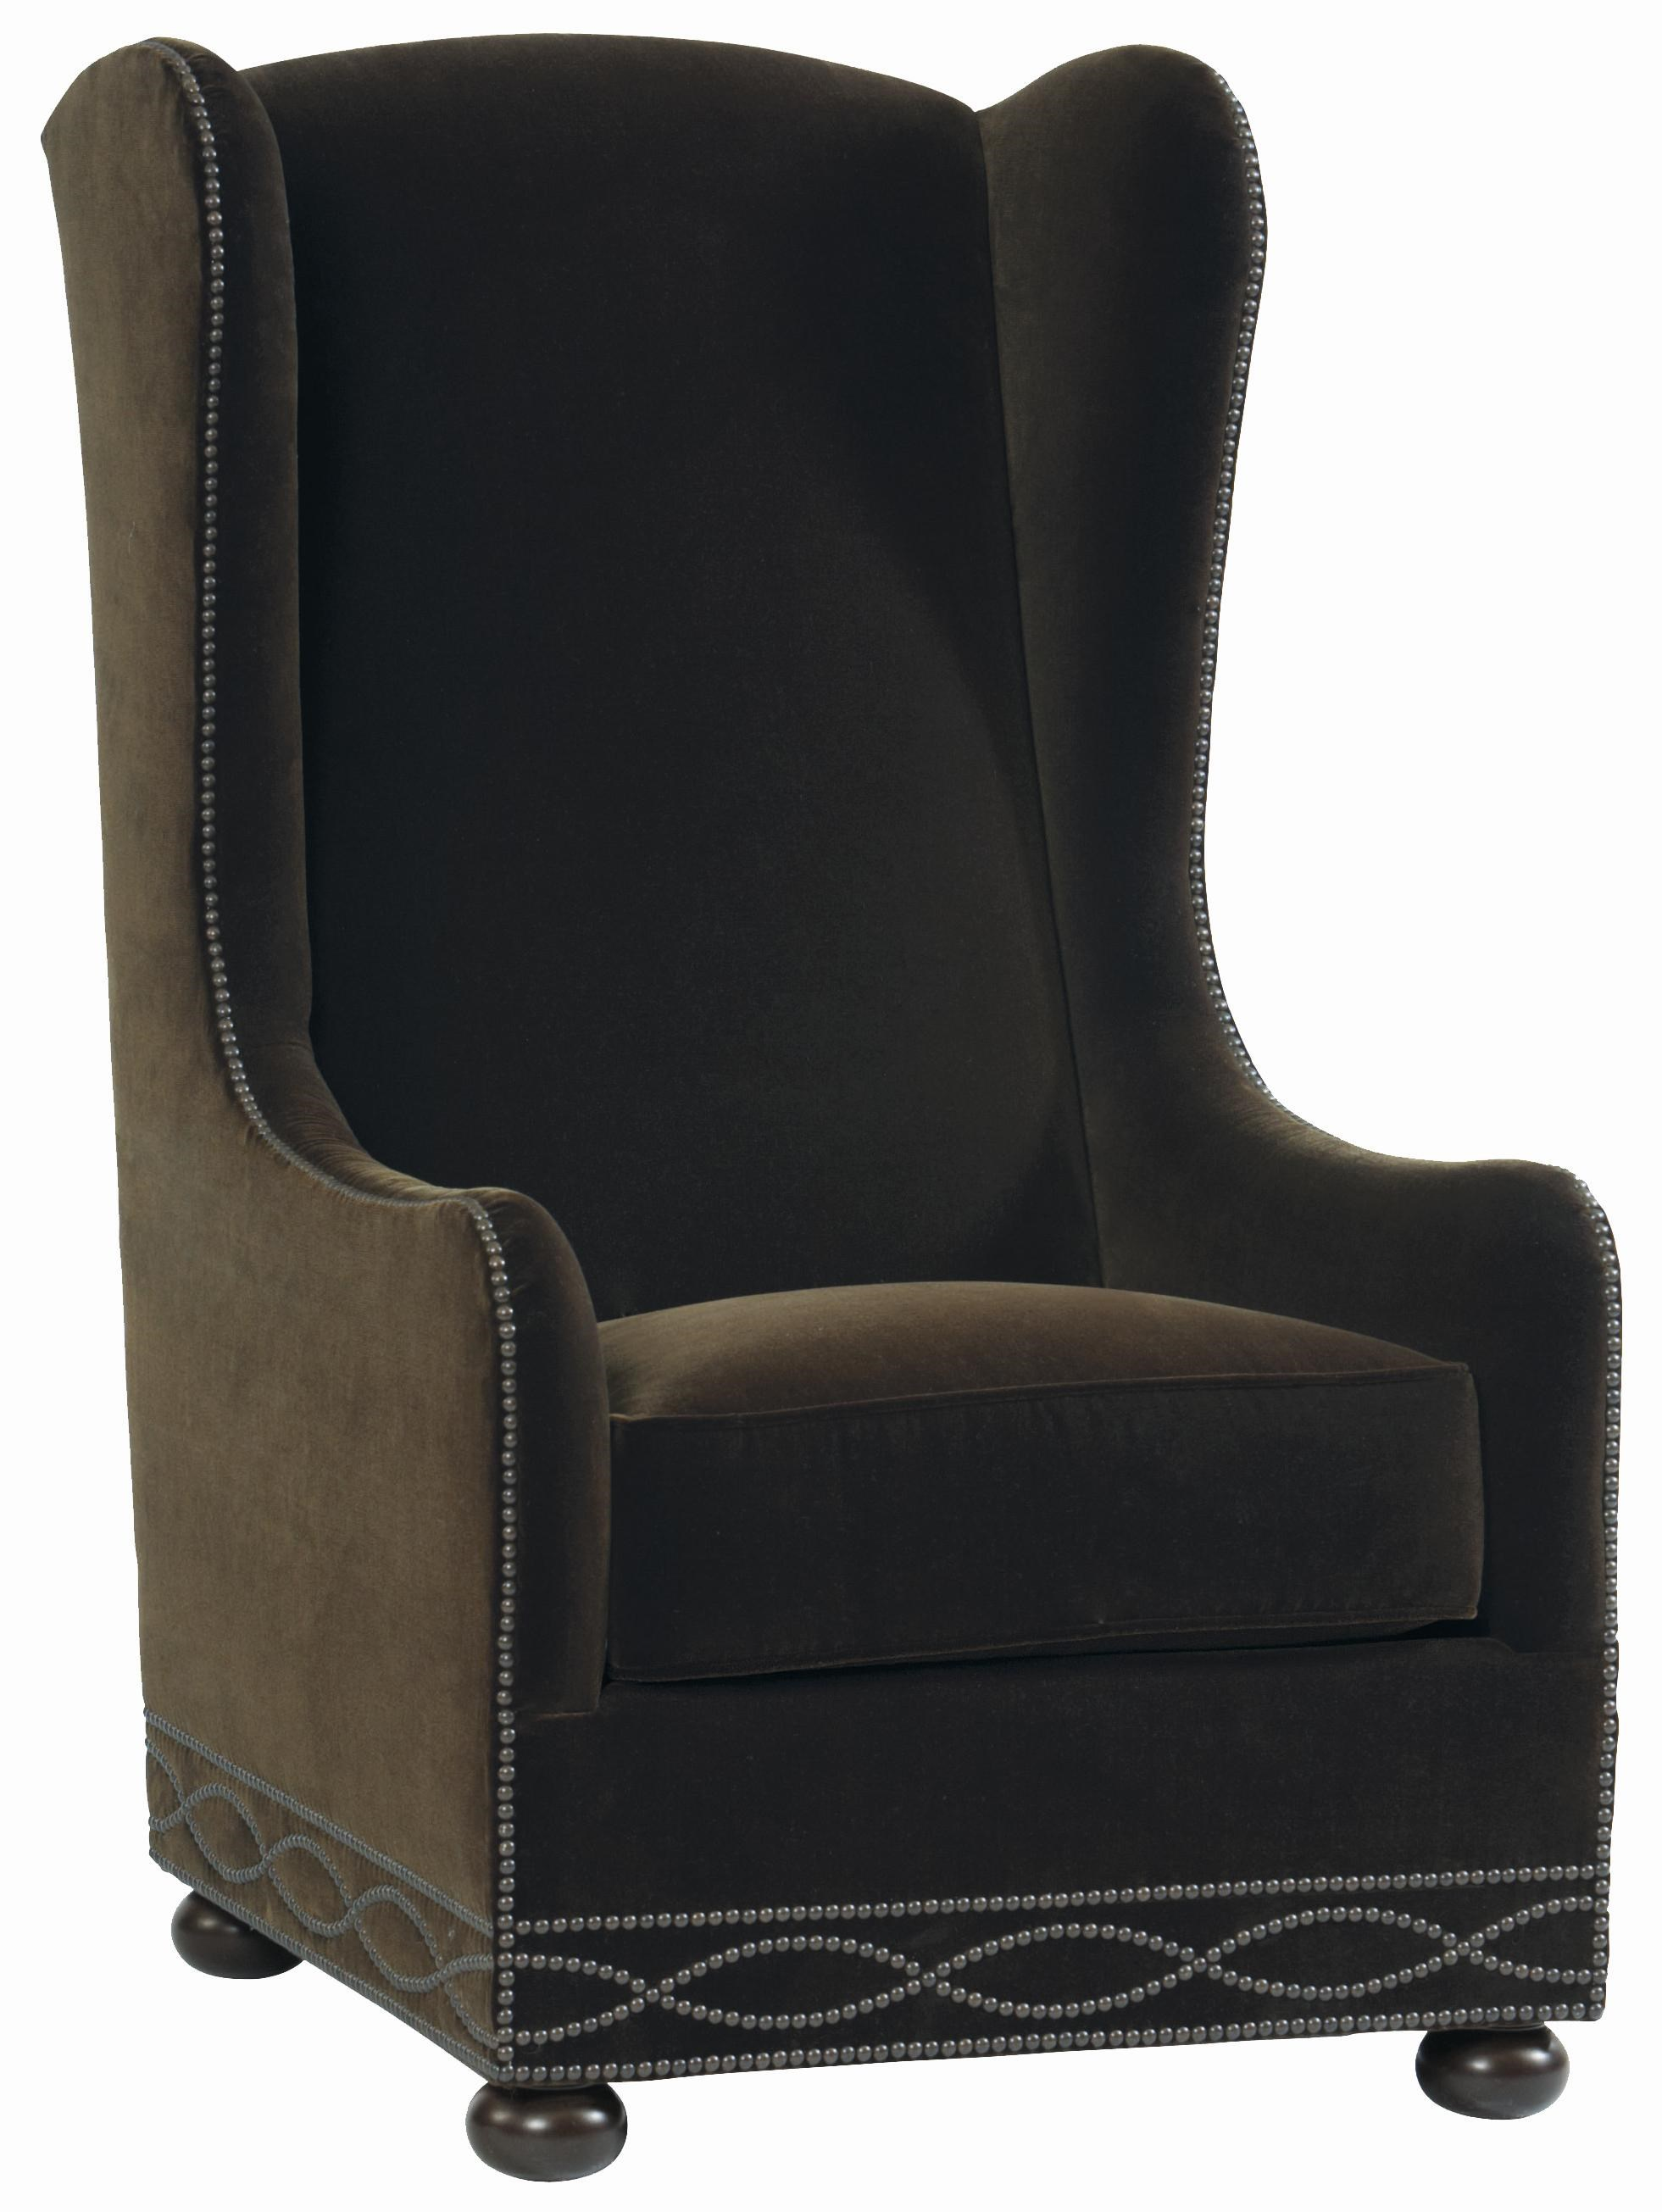 Bernhardt Upholstered Accents Blaine Wing Chair With High Back And Bun Feet    Baeru0027s Furniture   Wing Chairs